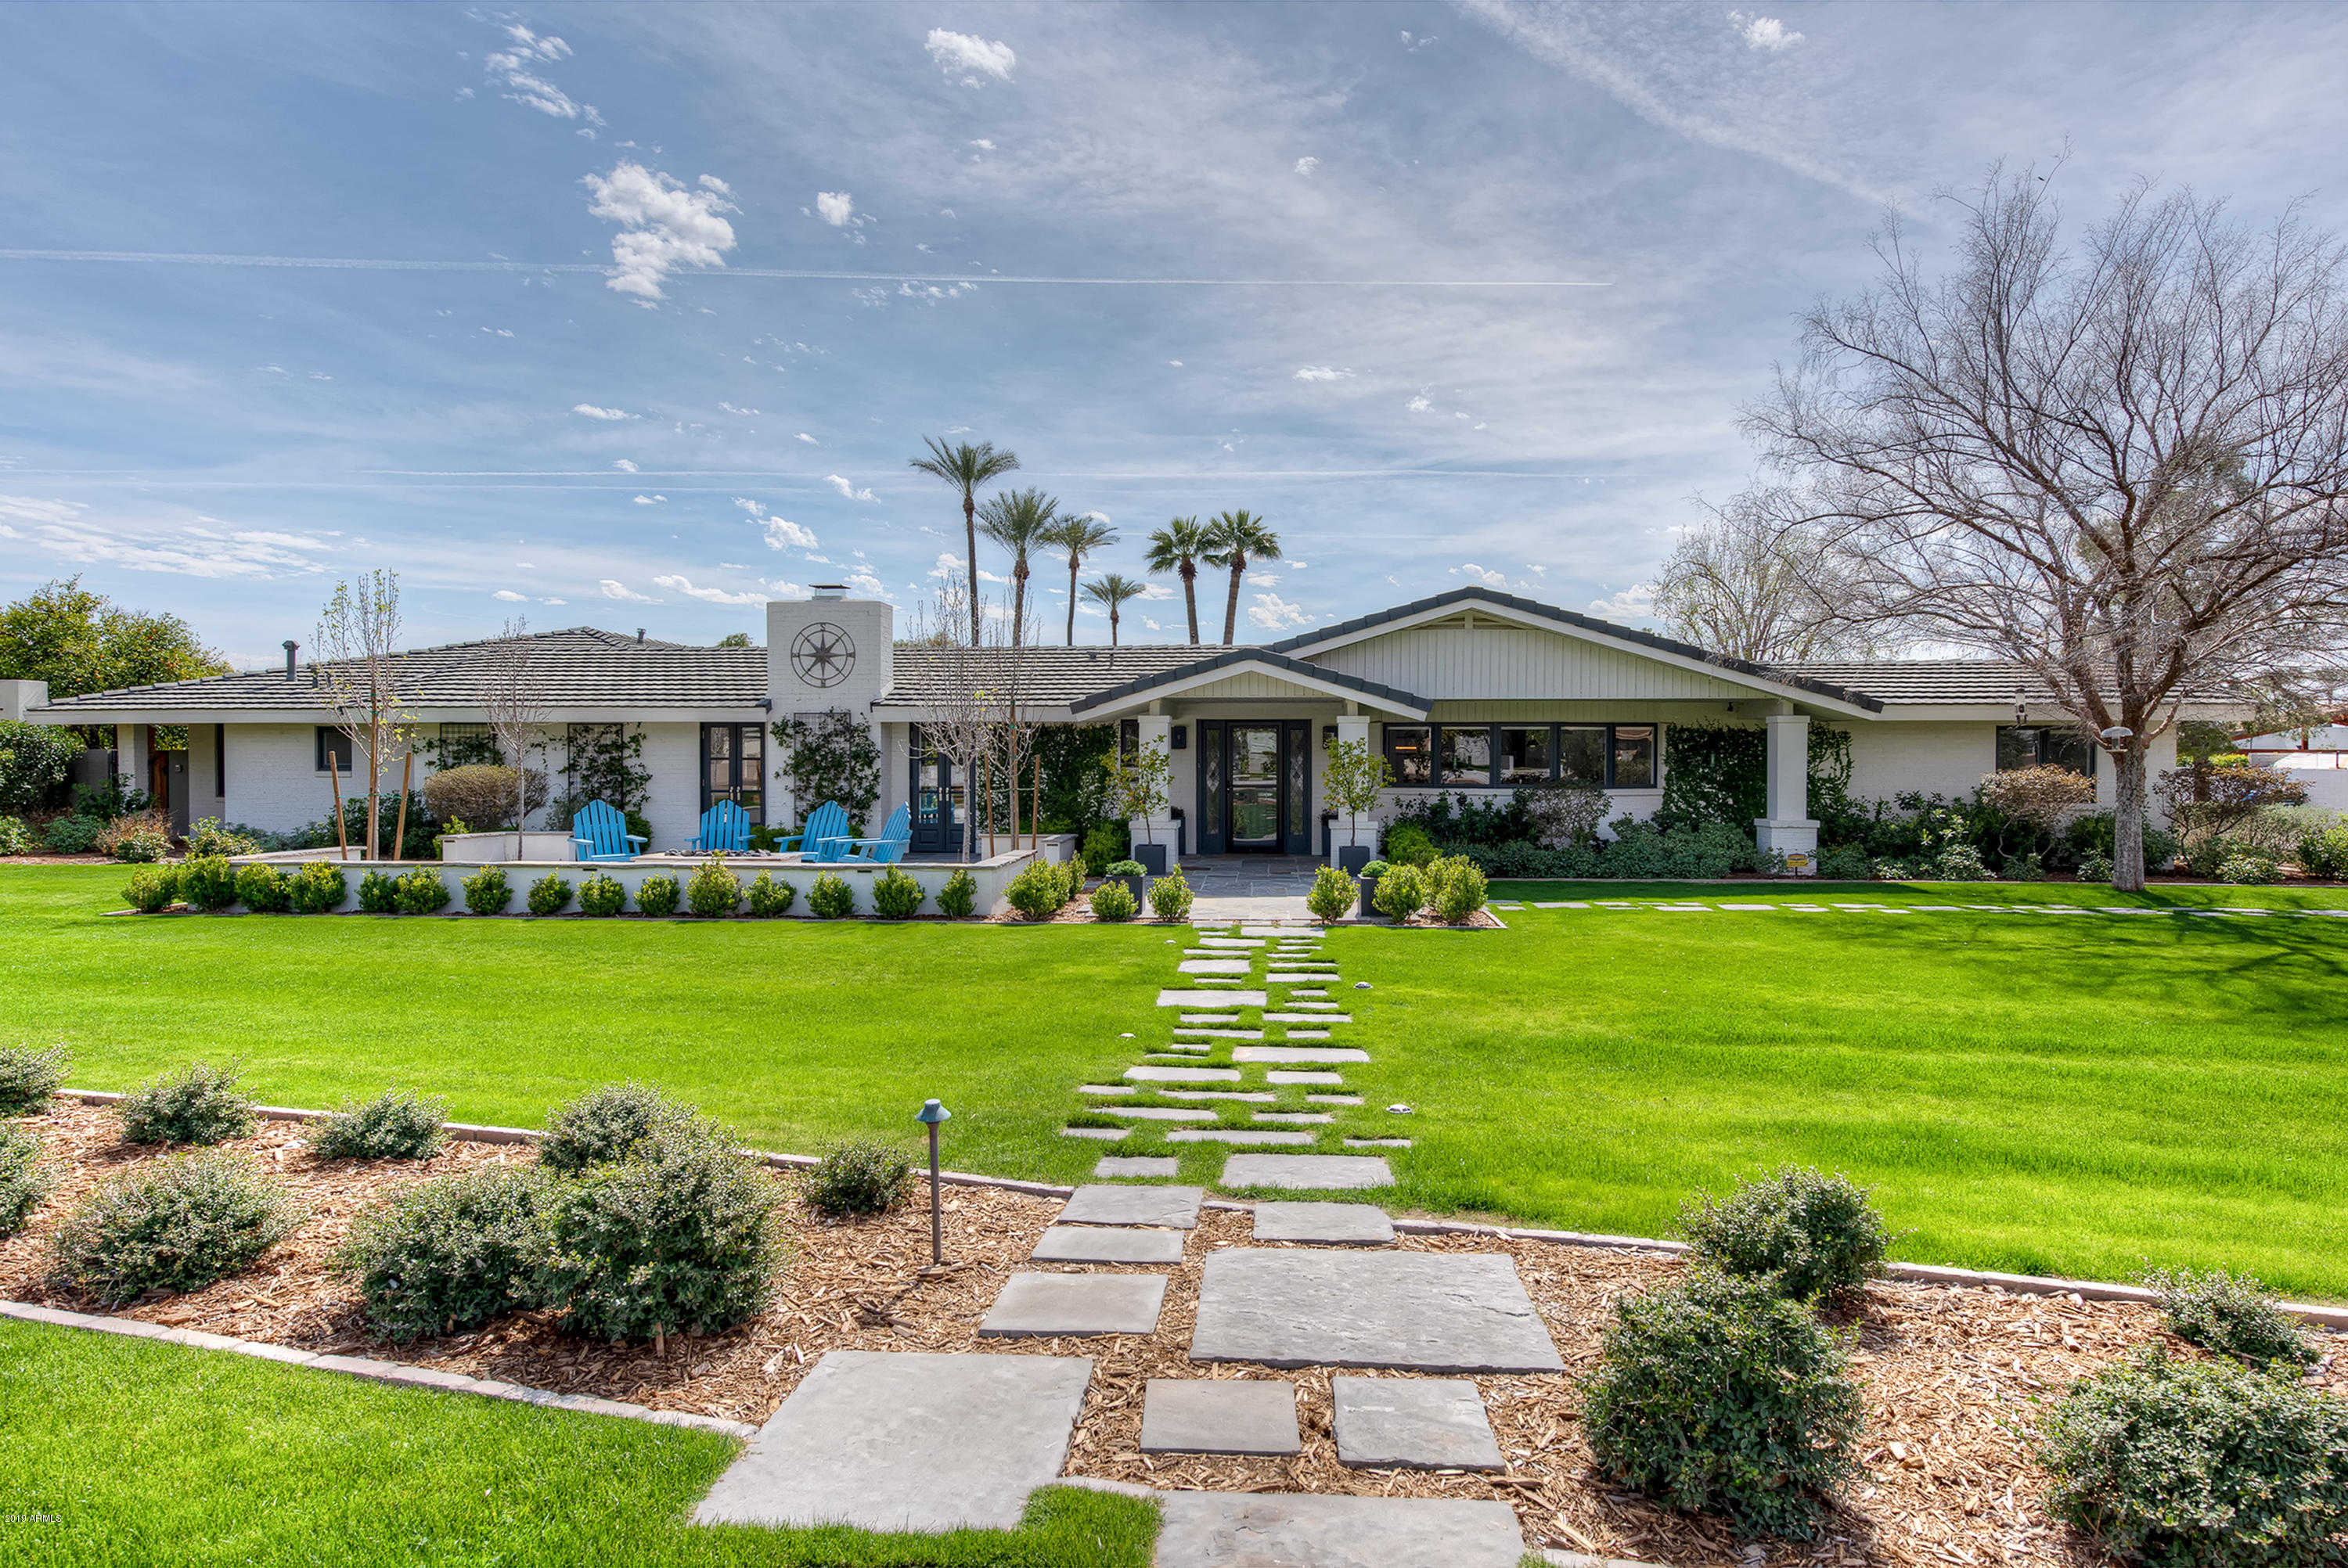 $2,674,000 - 5Br/5Ba - Home for Sale in Continental Groves Of Arcadia, Phoenix